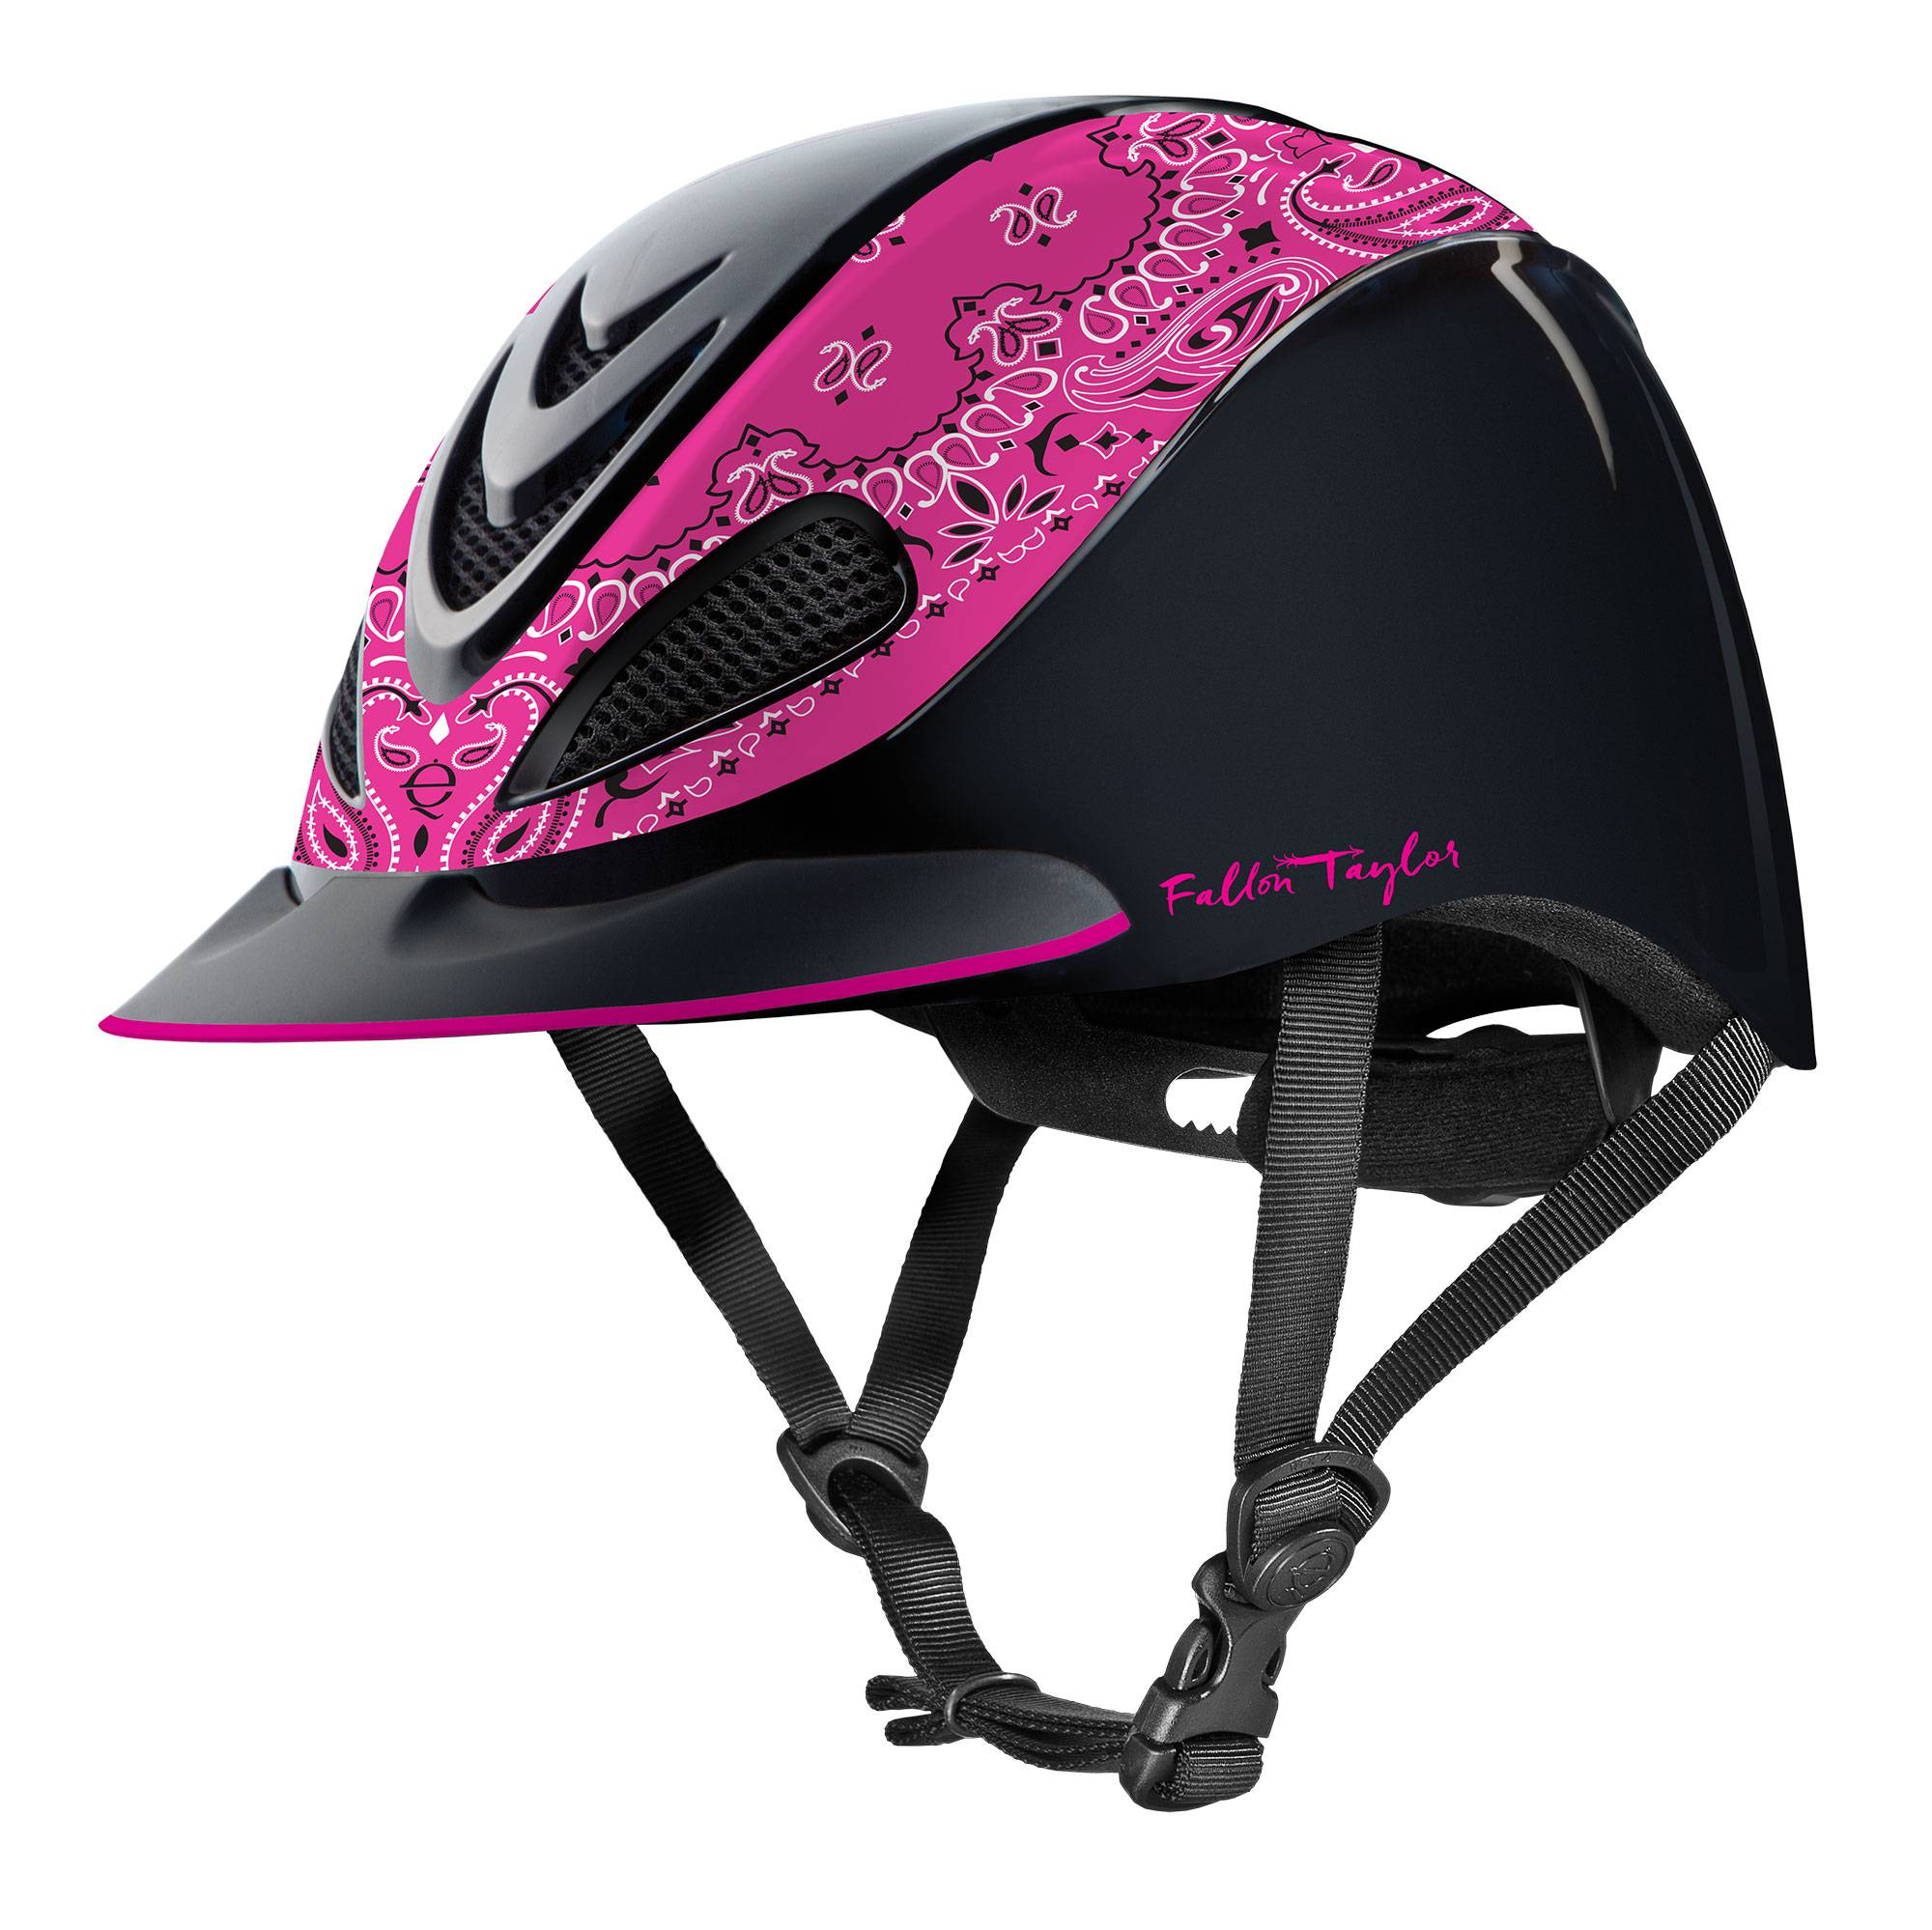 Troxel Fallon Taylor Helmet - Pink Bandana - FREE Cap with Purchase